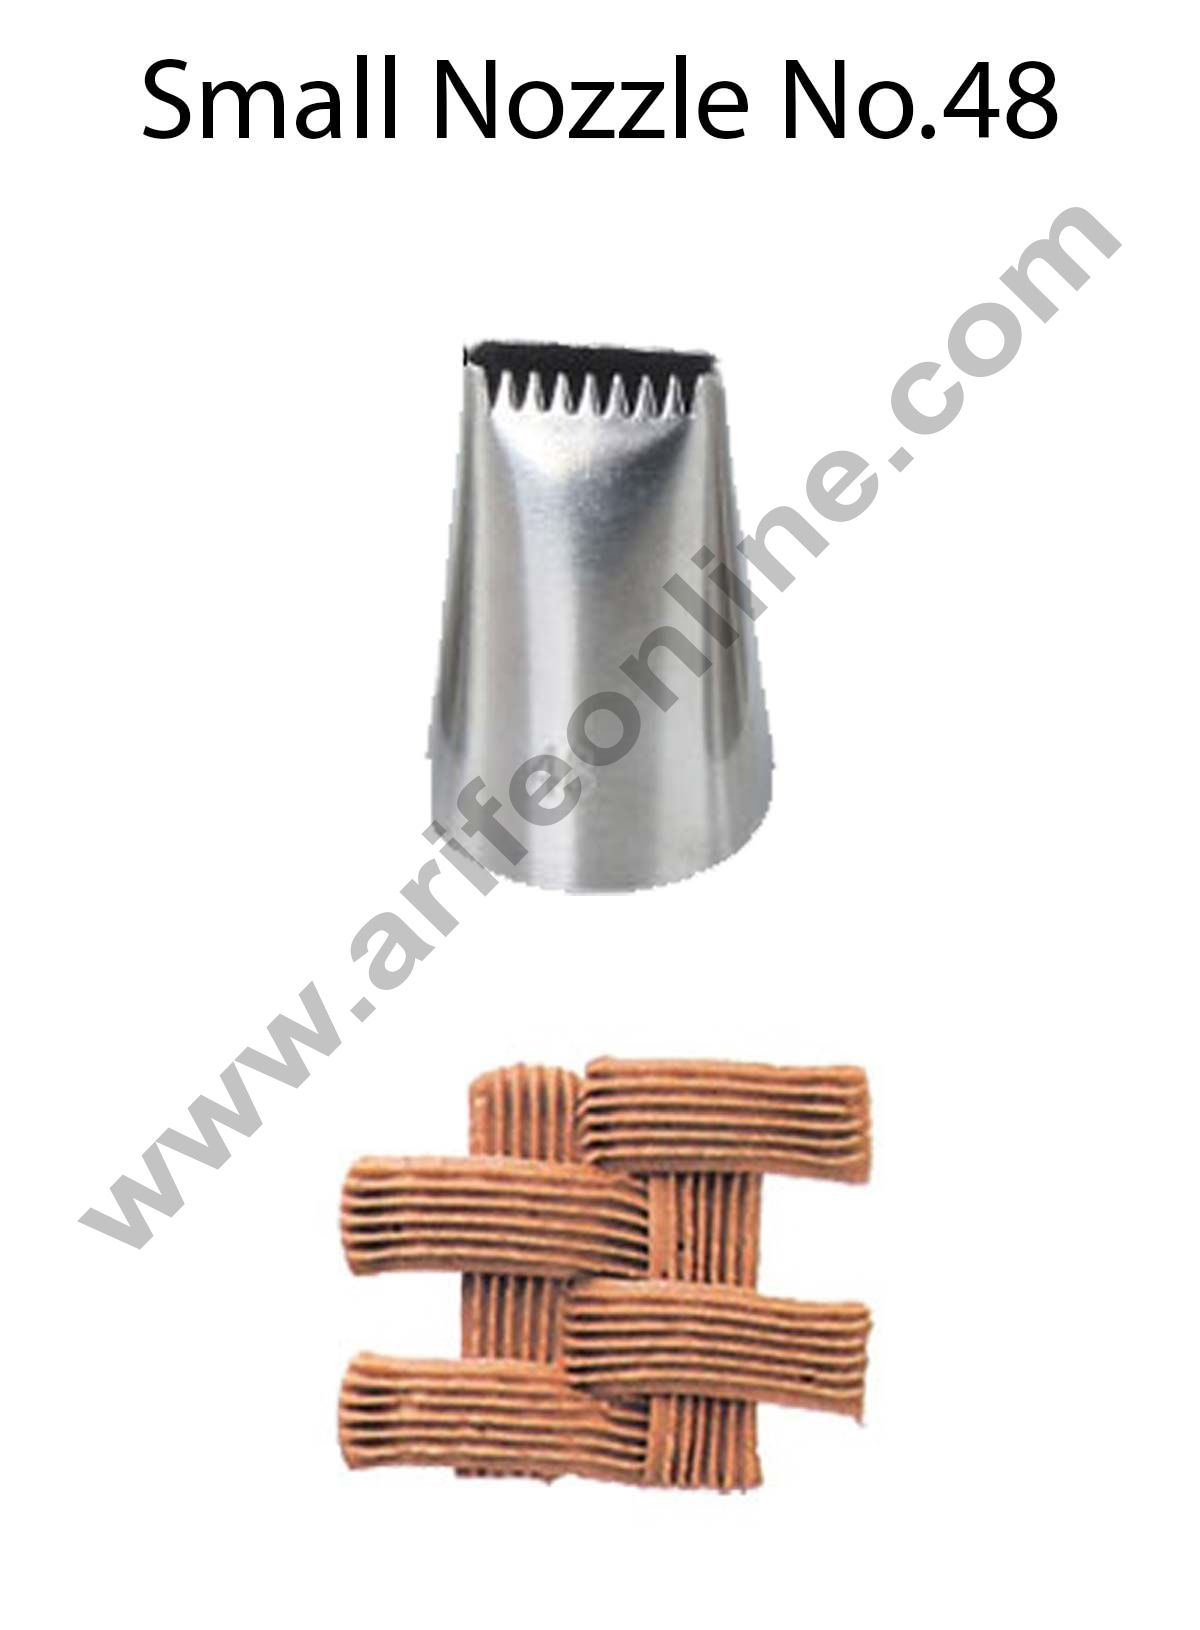 Cake Decor Small Nozzle - No. 48 Basketweave Piping Nozzle